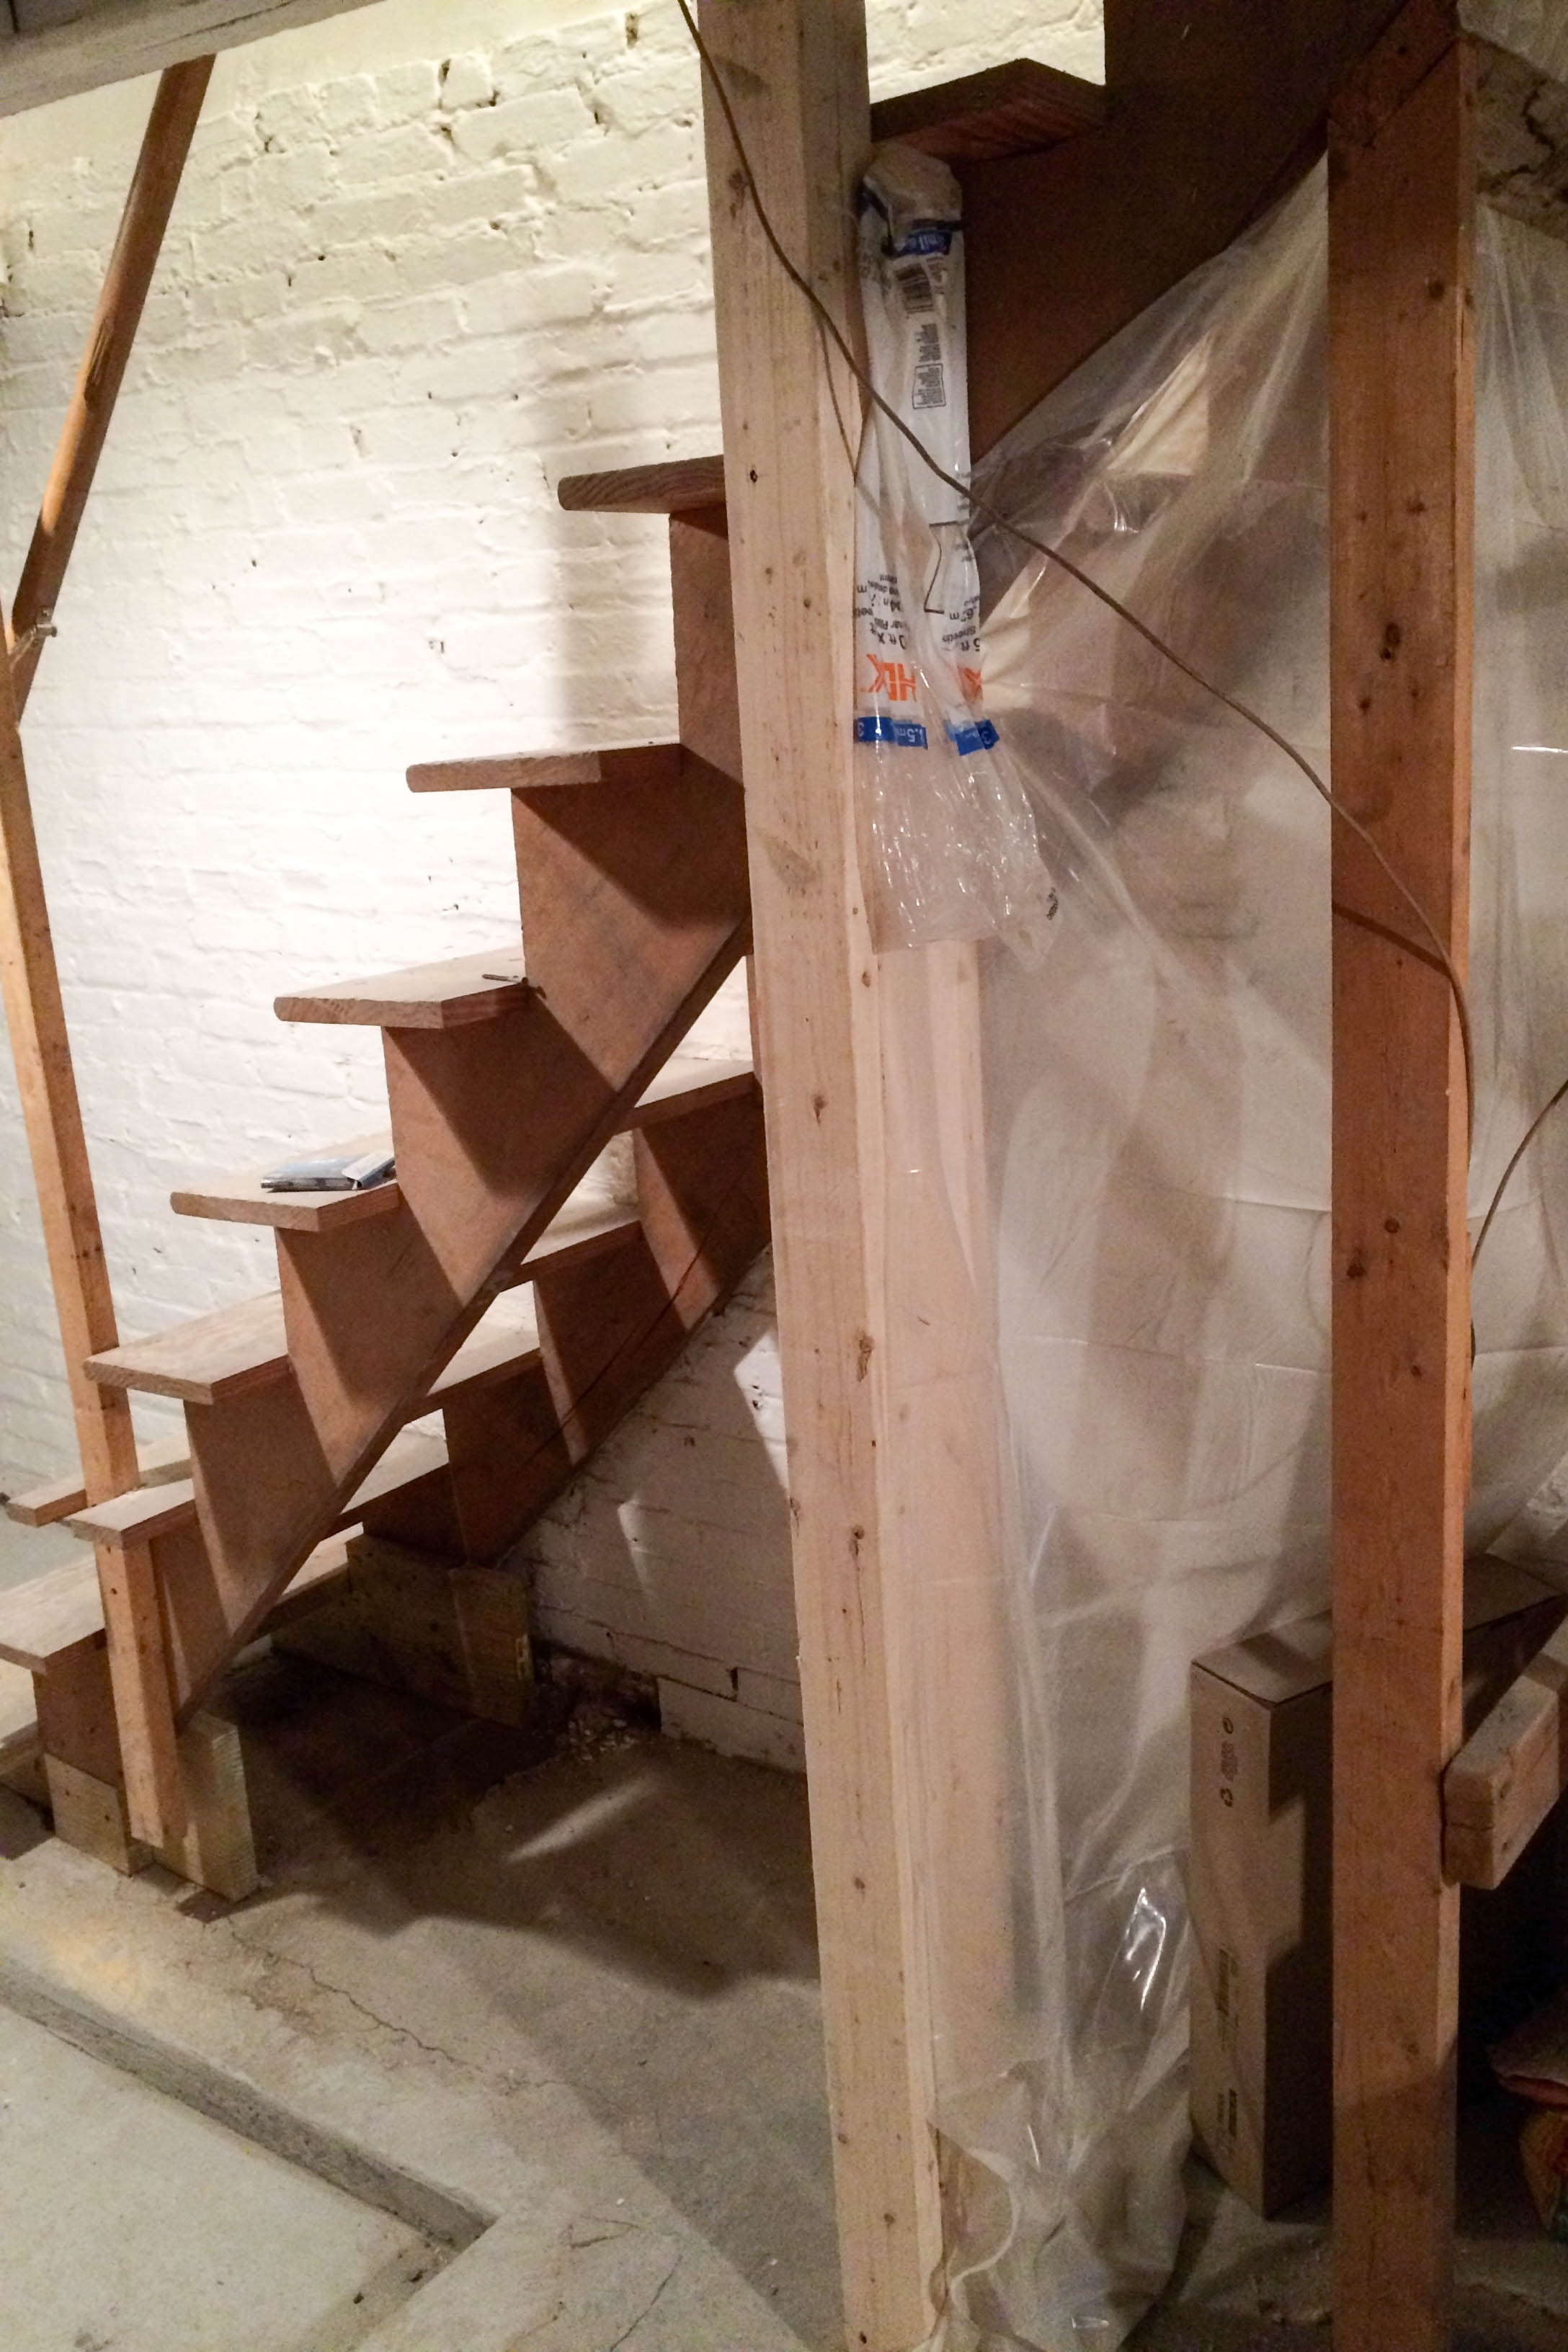 Diy Painted Upgraded Basement Stairs An Affordable Option | Cost To Replace Basement Stairs | Hardwood | Stringer | Spiral Staircase | Stair Railing | Bulkhead